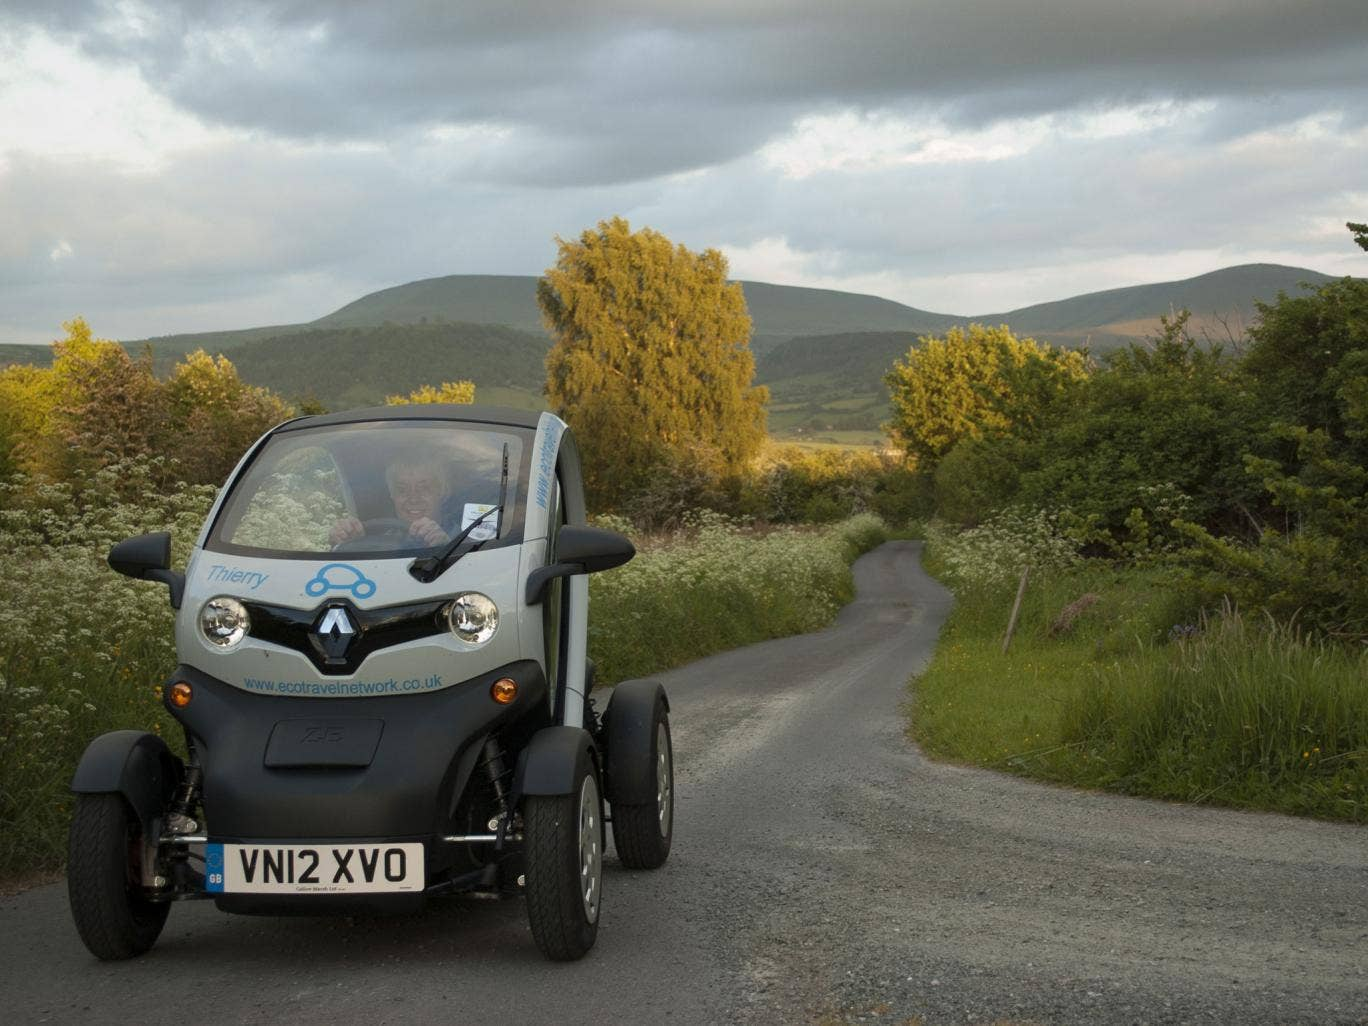 Welsh Road Trips includes the hire of a two-seat electric car